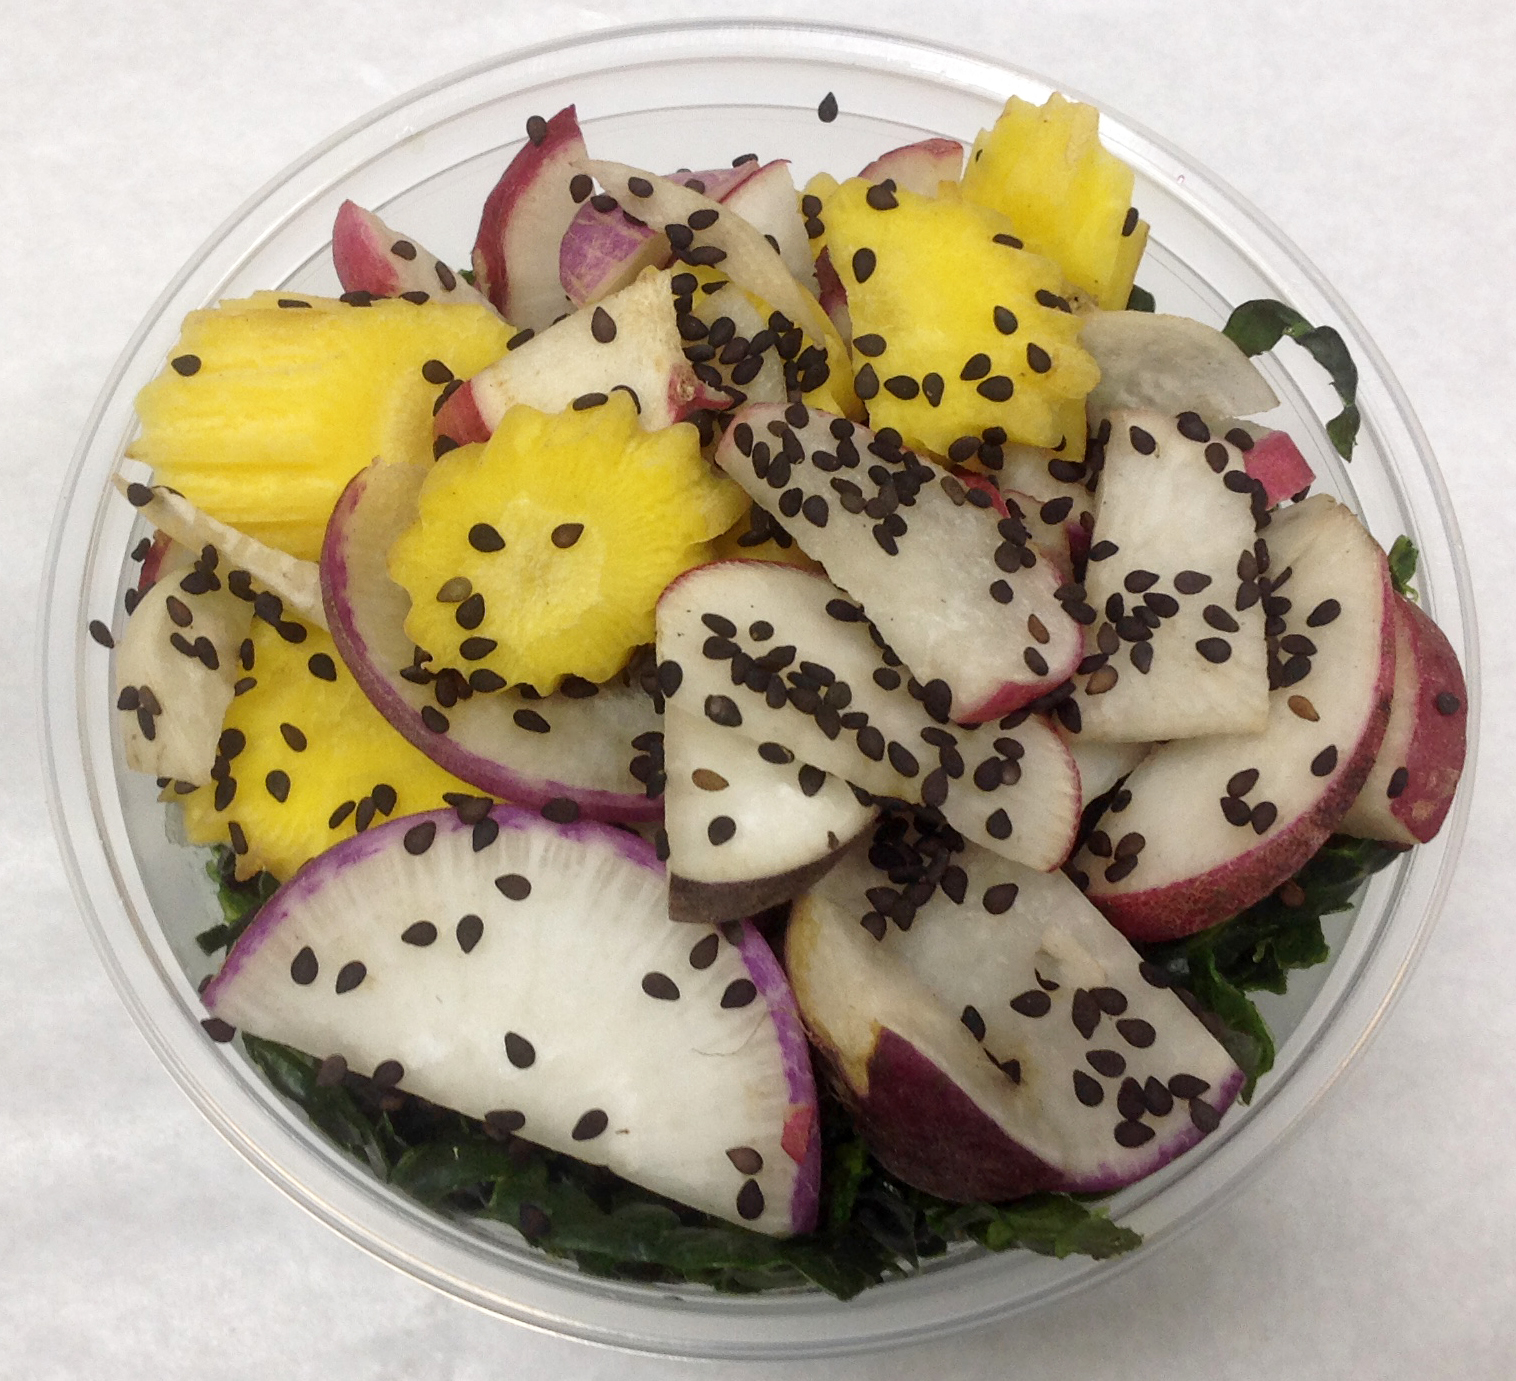 Lacinato kale salad with red radish, colorful heirloom carrots and black sesame seeds.